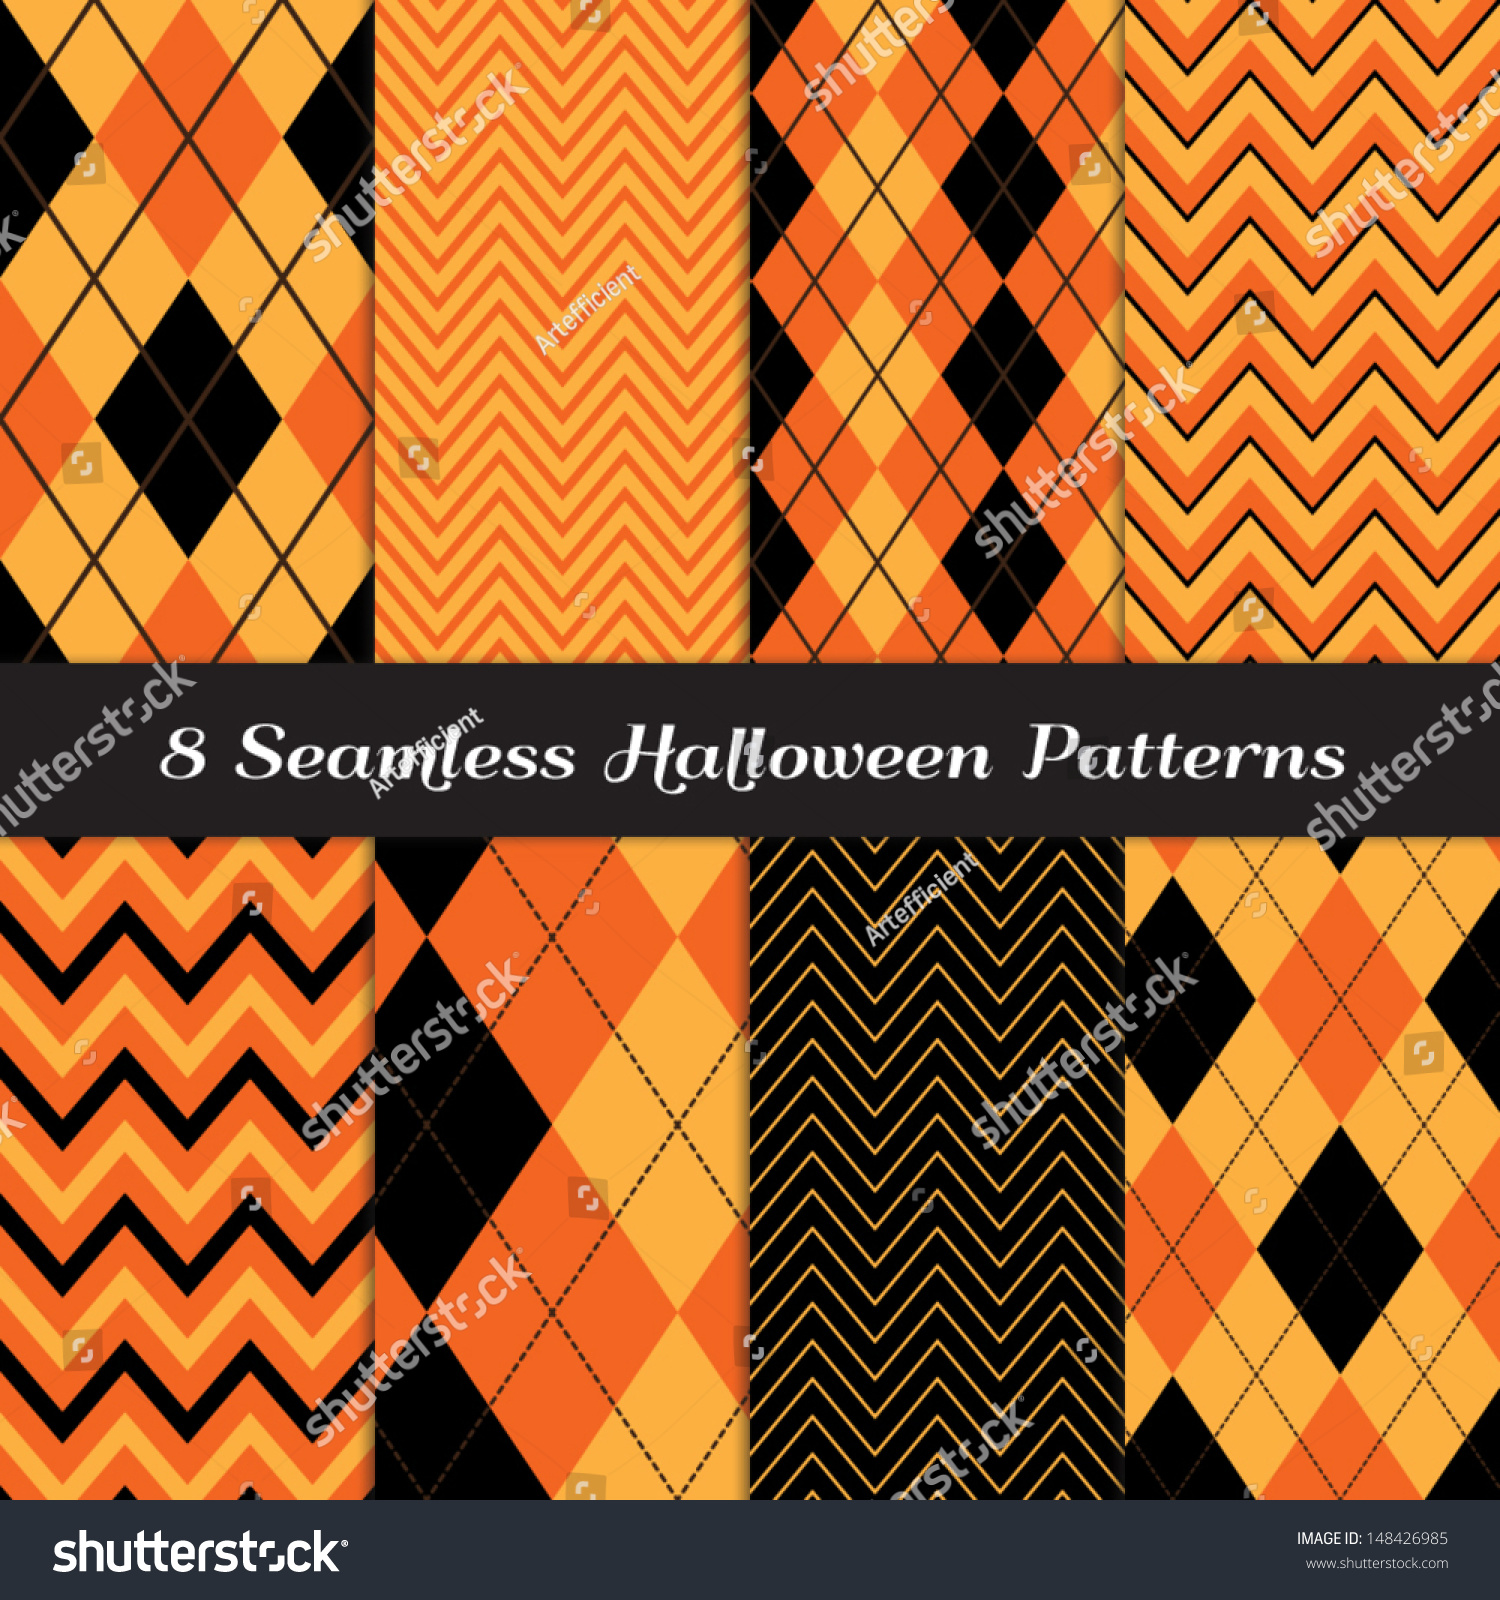 Halloween orange black and brown argyle chevron